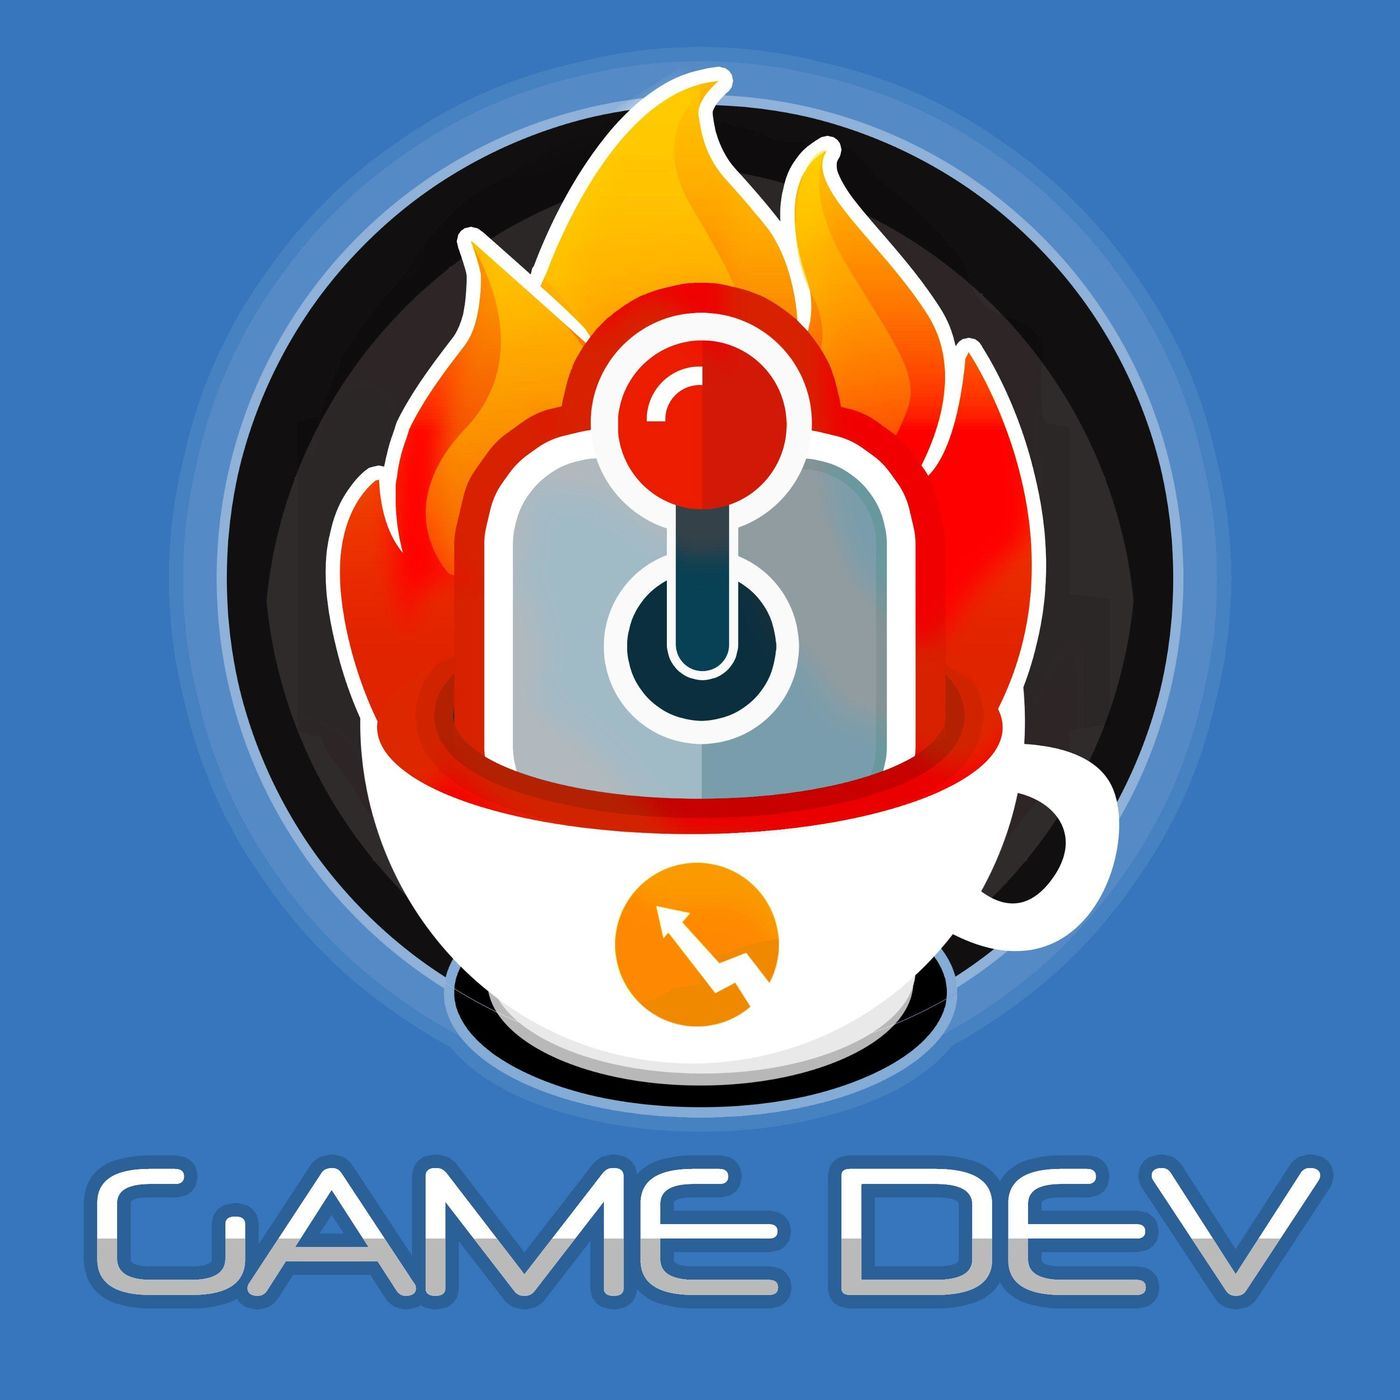 017: Game Success - As a Game Developer, how do you define success for your Indie Mobile Game?